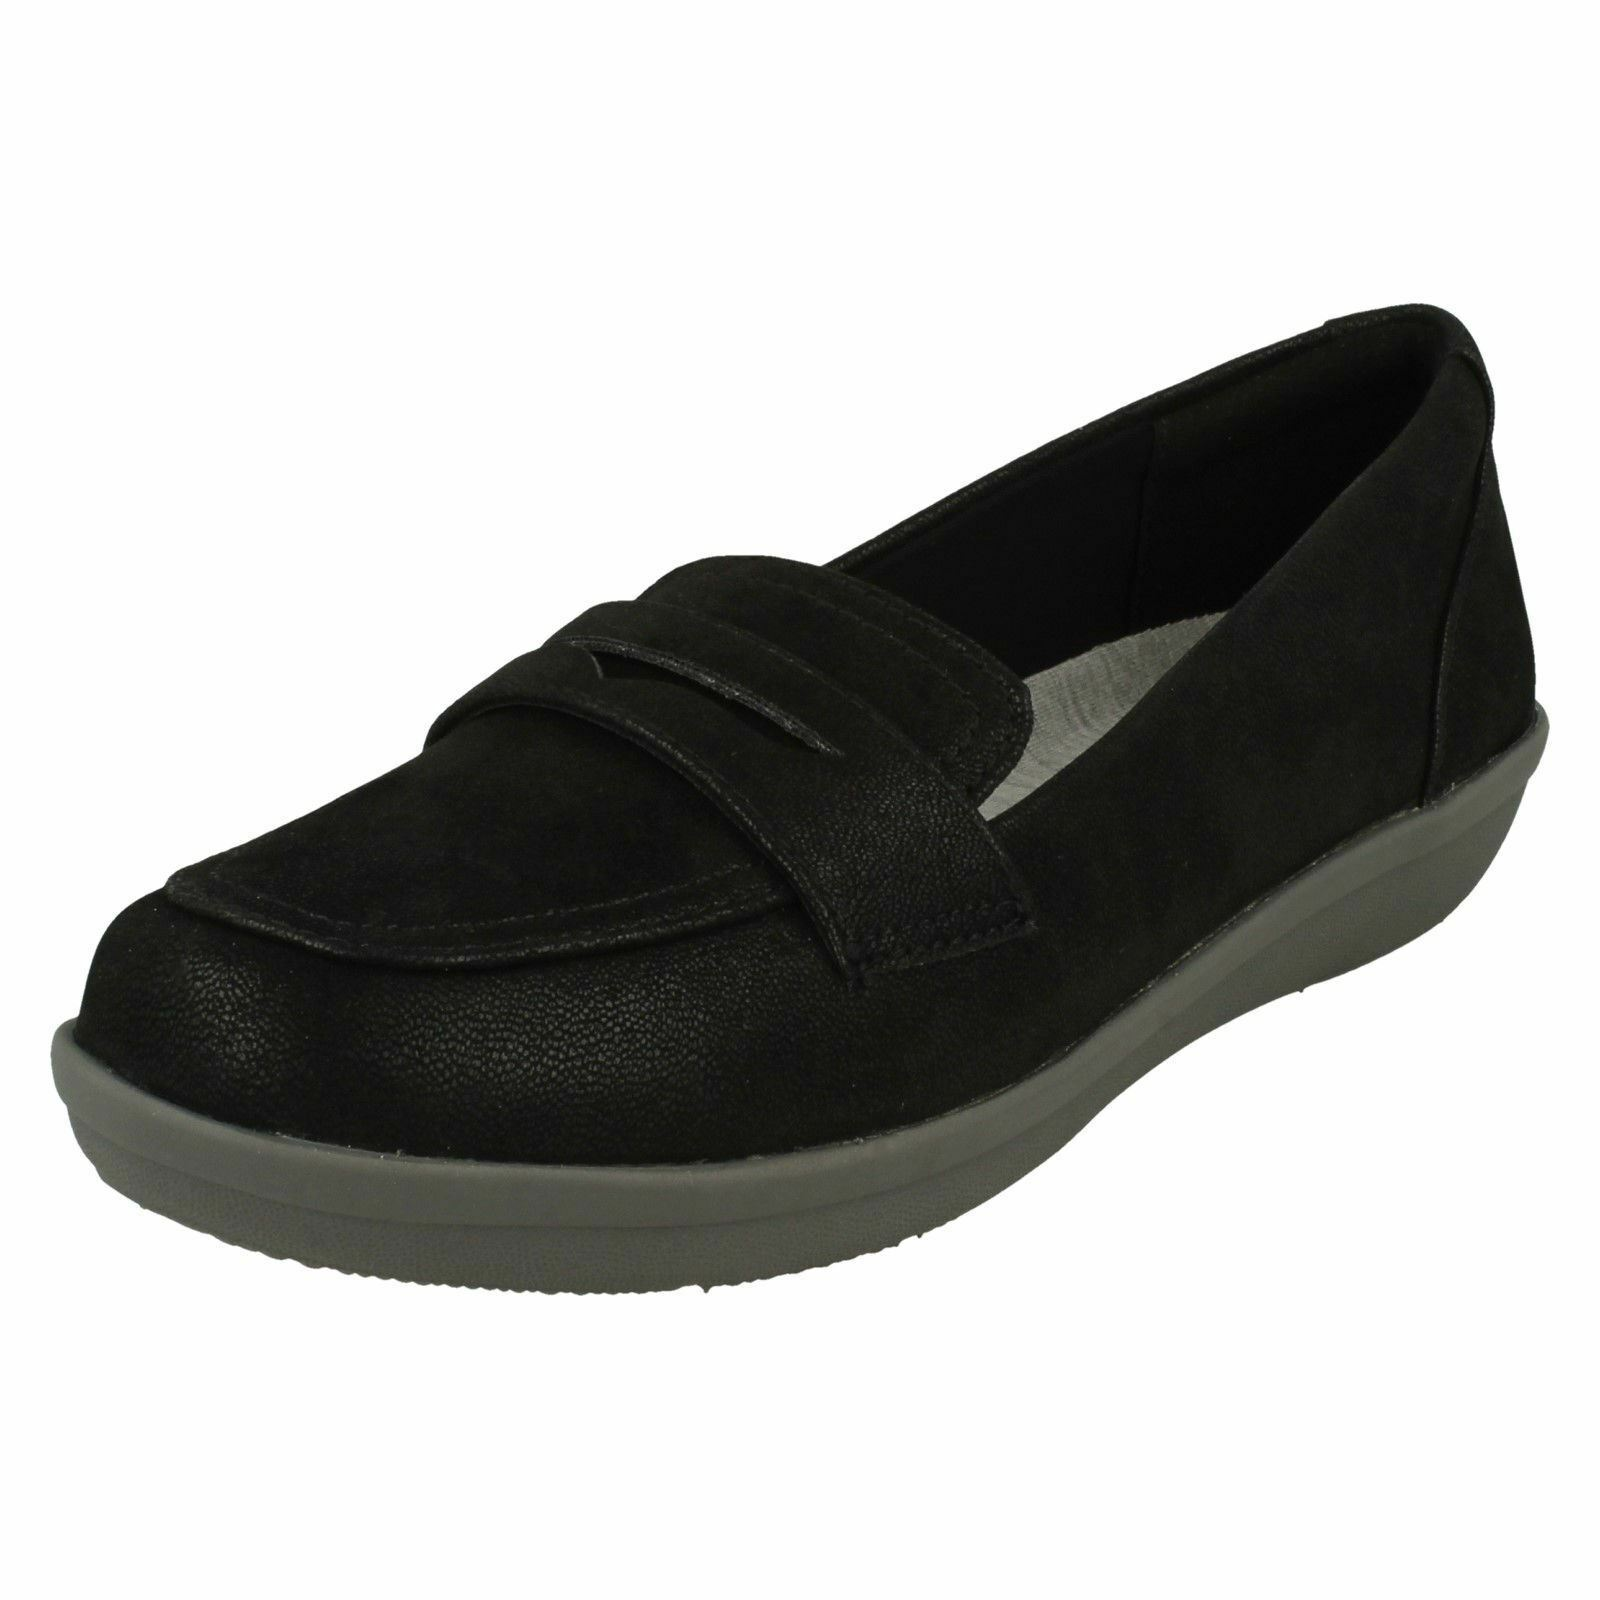 LADIES CLOUDSTEPPERS CLARKS AYLA FORM SMART CASUAL LOAFERS SLIP ON COMFORT SHOES